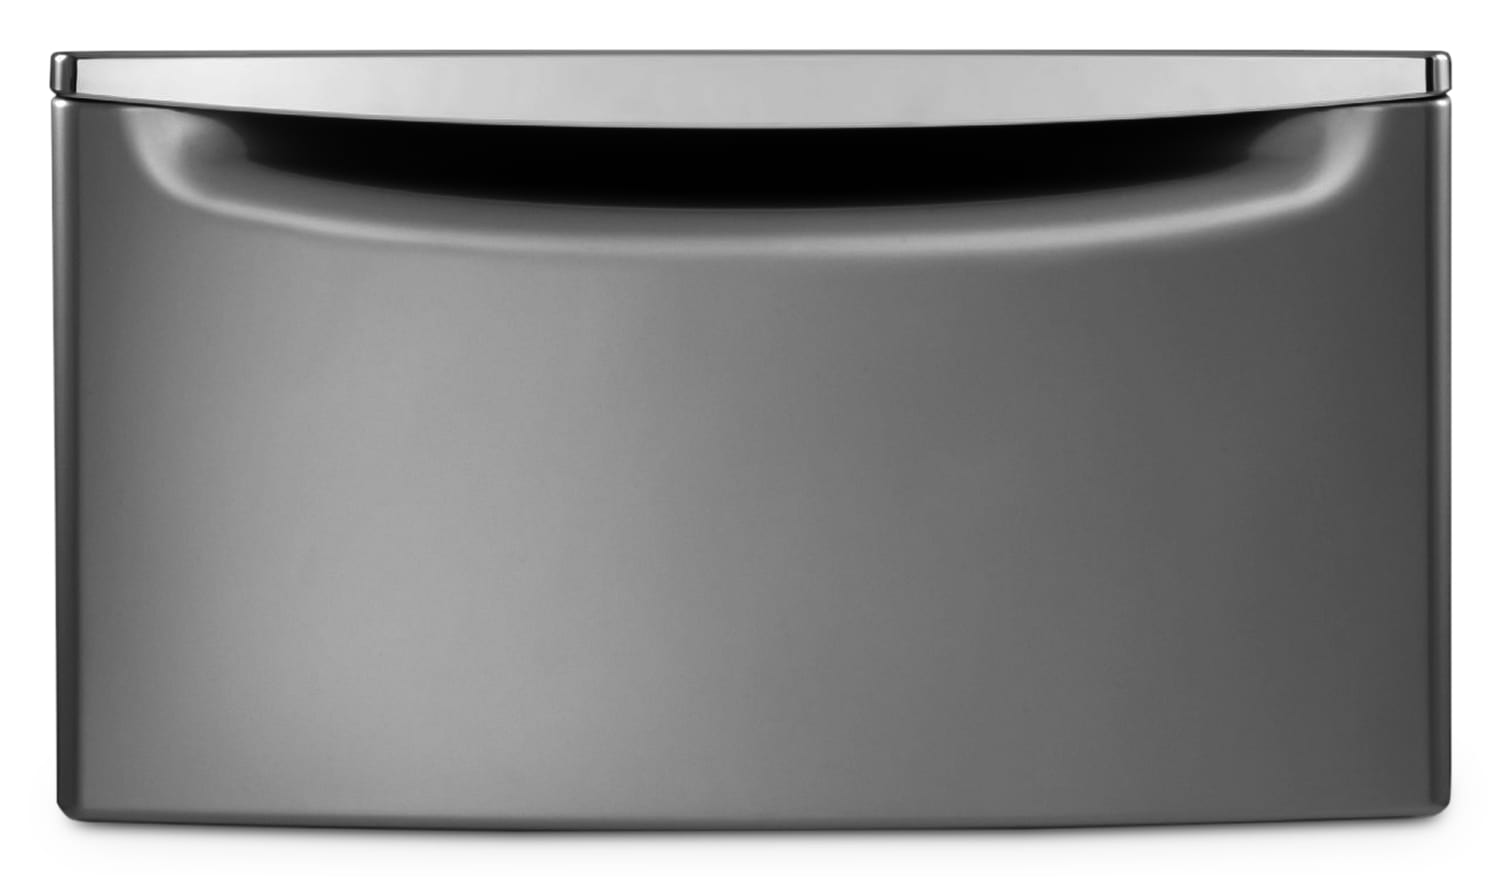 Washers and Dryers - Whirlpool Laundry Pedestal - Chrome Shadow